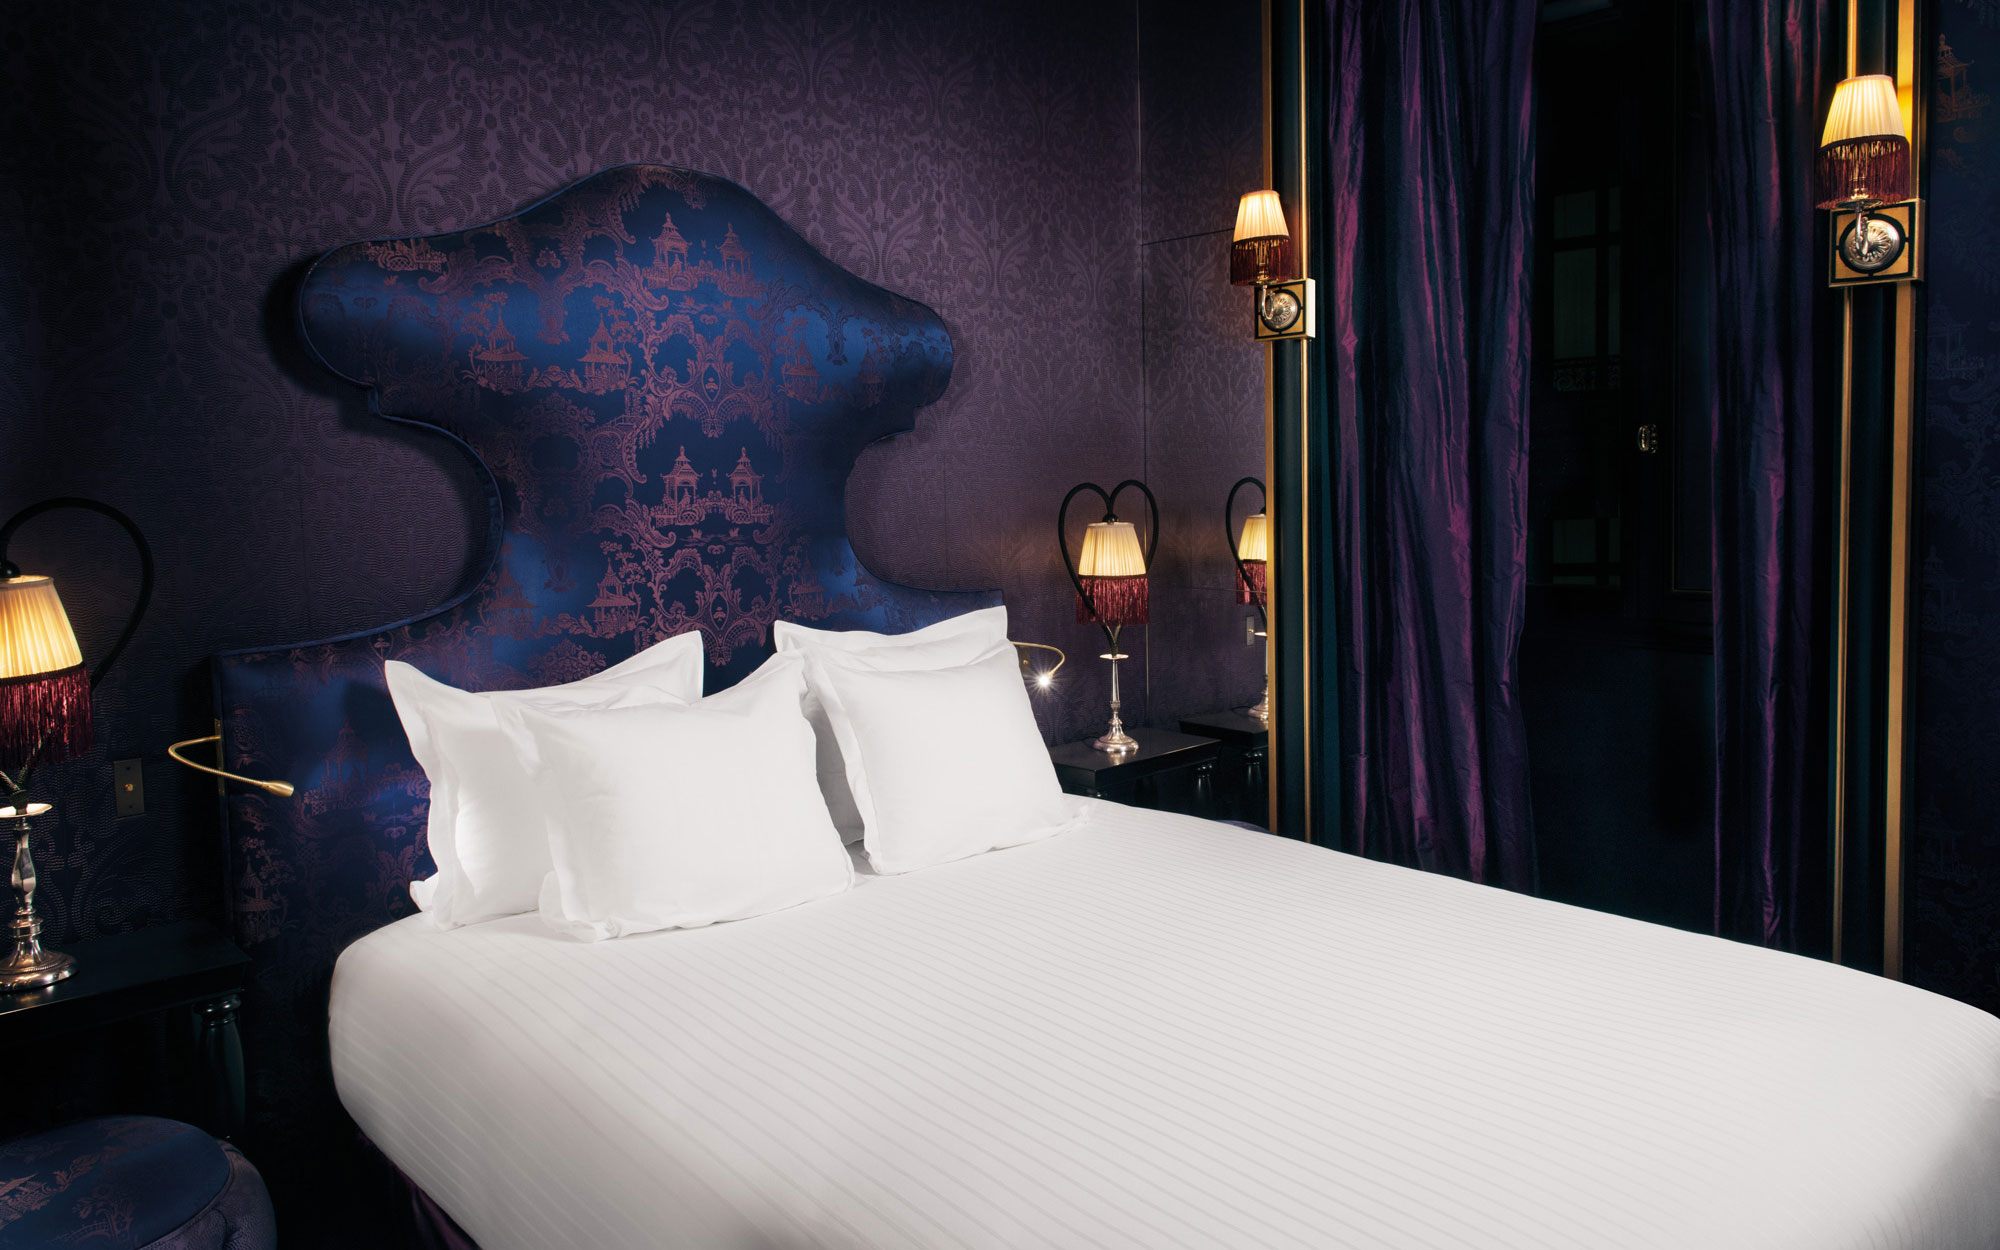 New to Paris: a Vampy Hotel With Design Steeped in Sex: Liane de Pougy